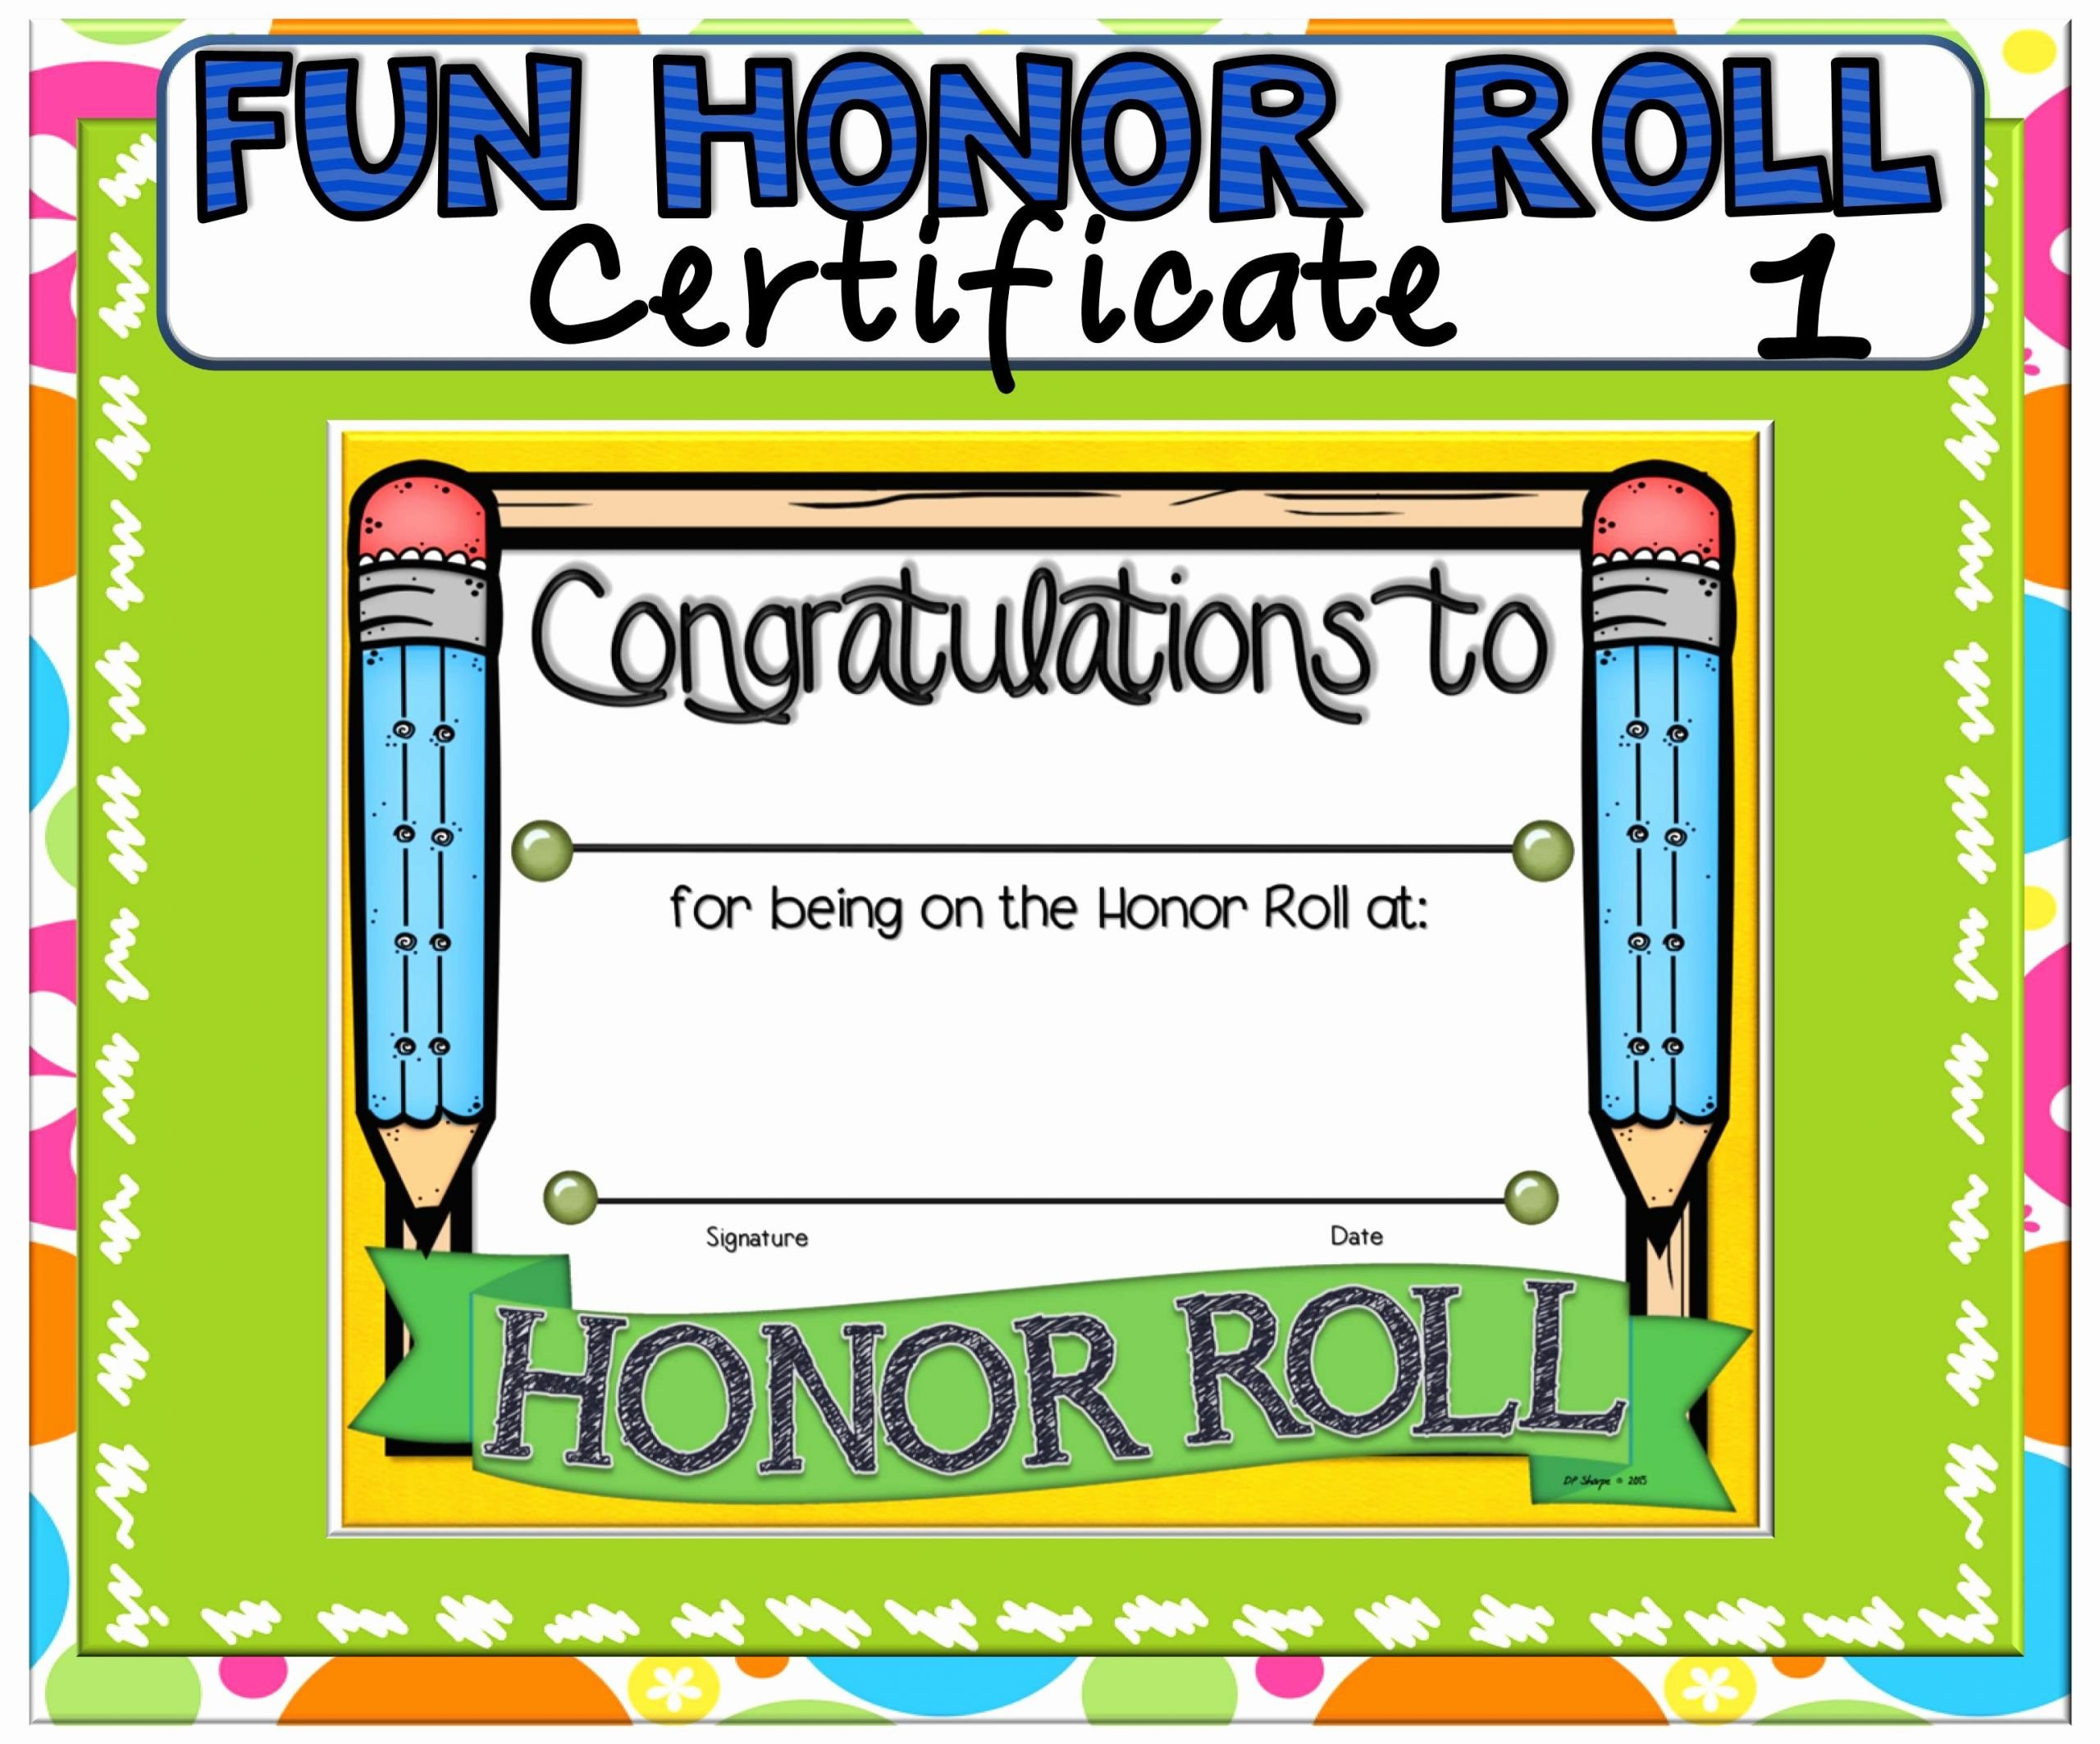 Honor Roll Certificate Template Free Fresh Certificate Fun Honor Roll 1